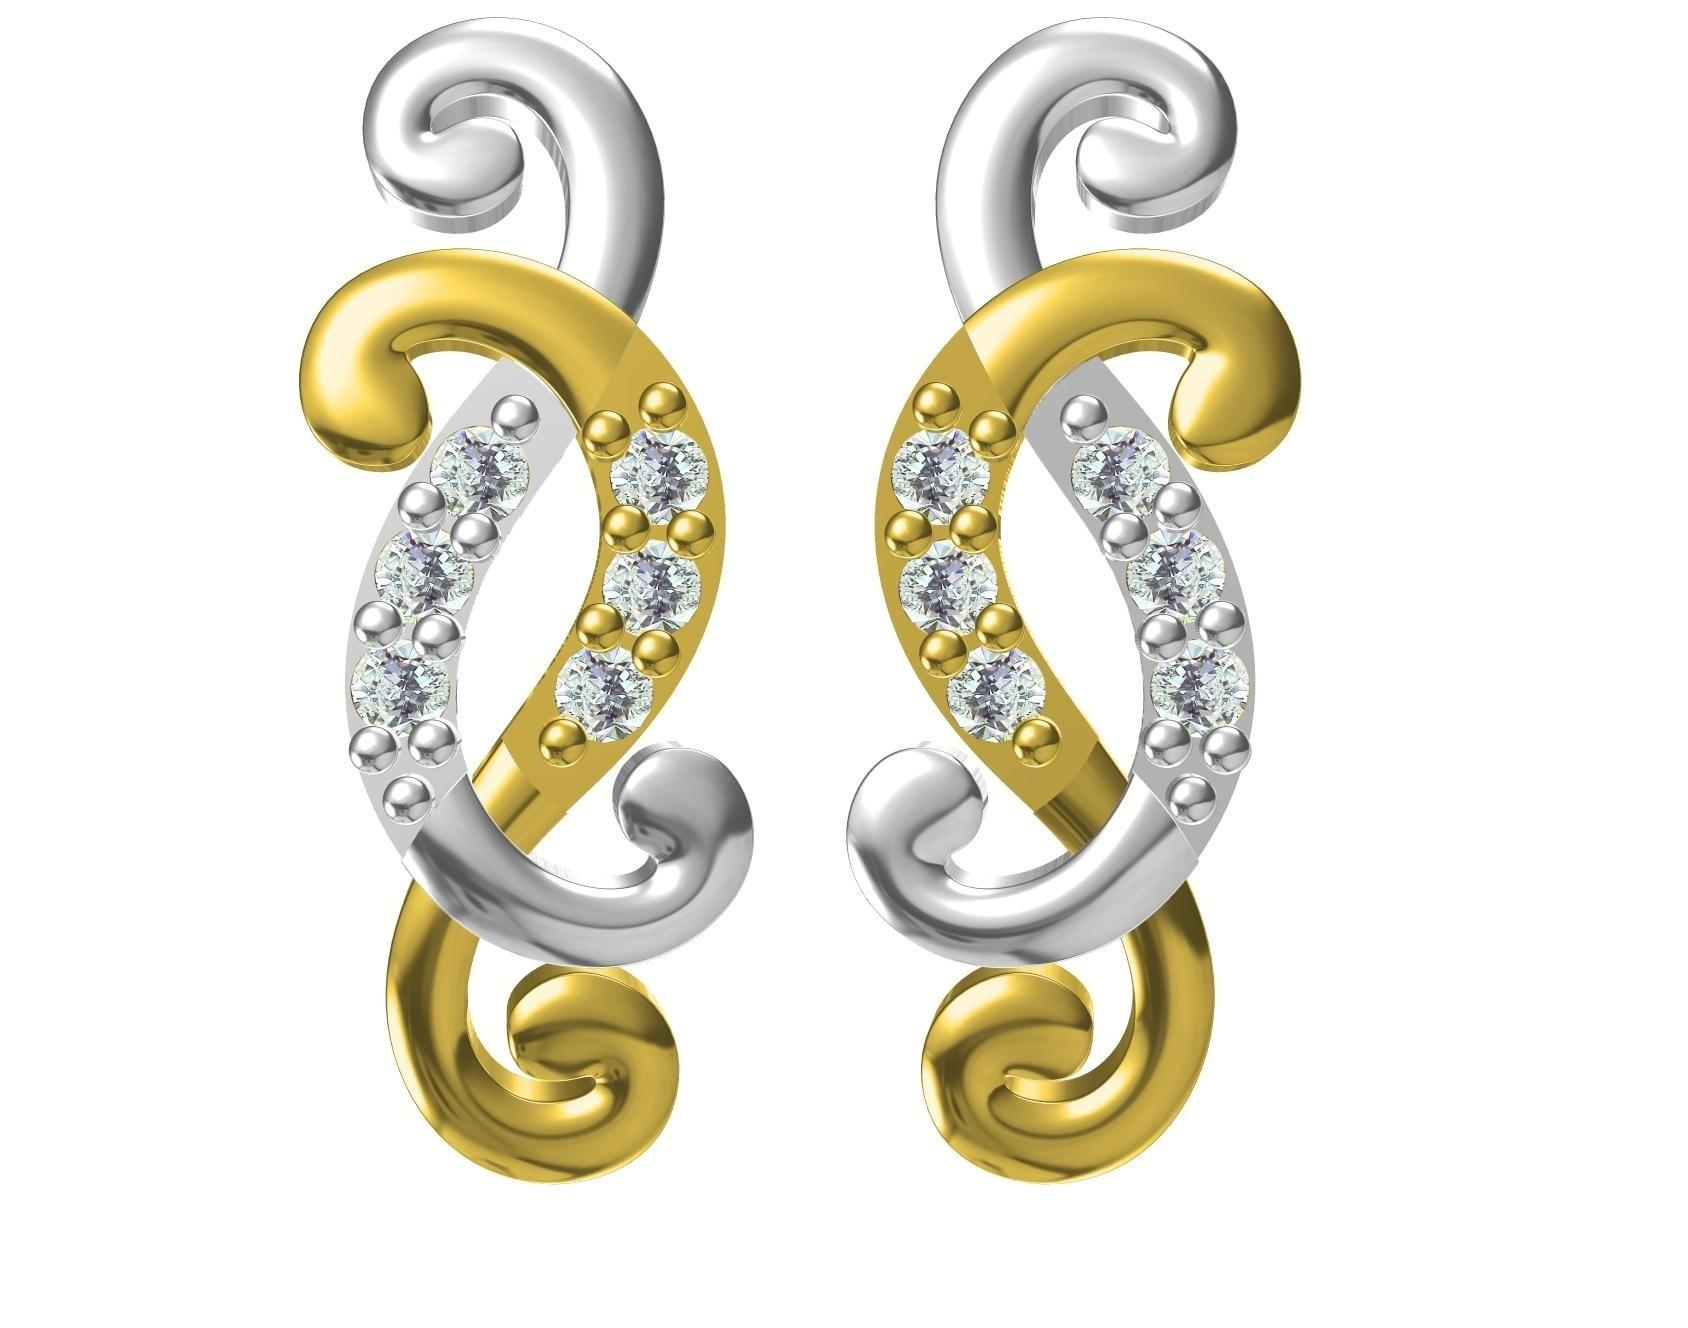 Provence Jewelry Woman Earring Natural Diamond/CZ/CVD/HPHT/Synthetic Moissanite Diamond Setting 18k Yellow Gold Earring Studs